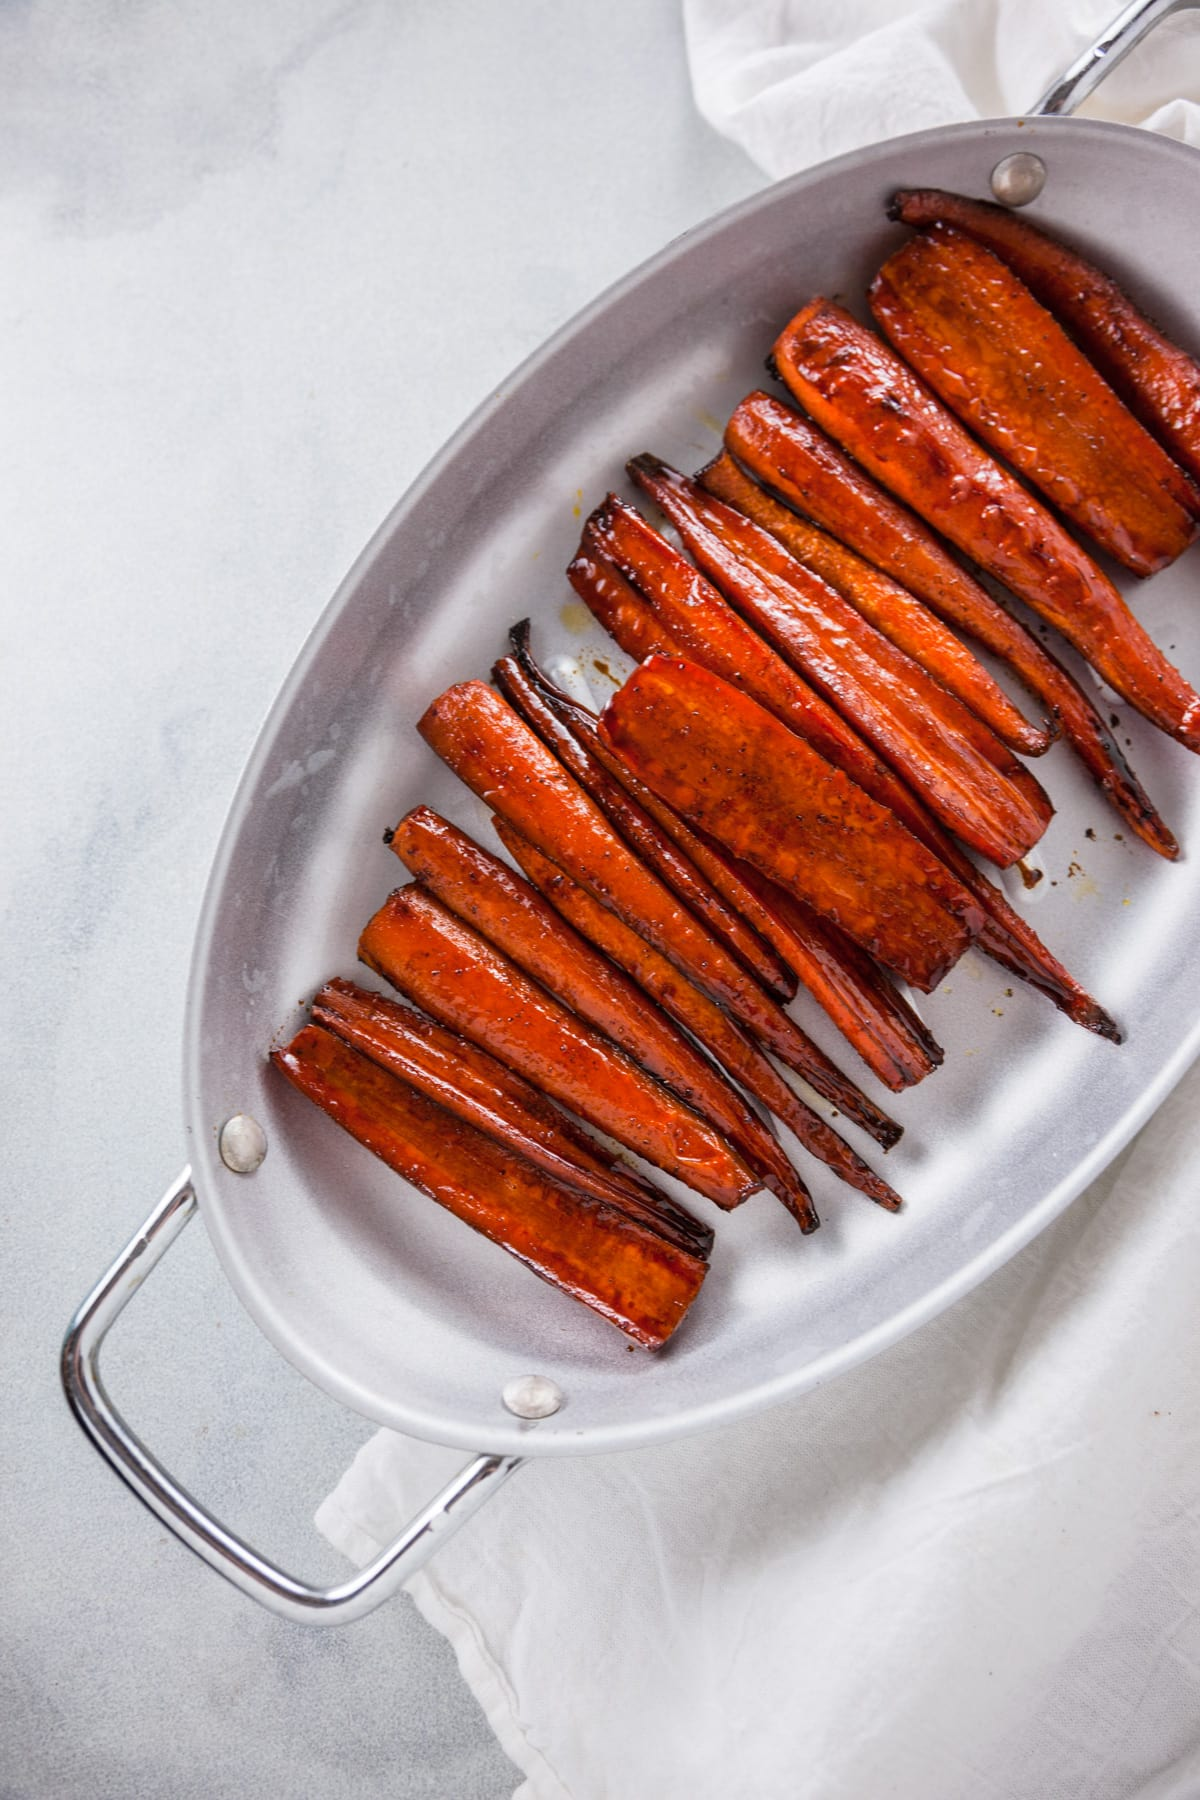 An overhead shot of Balsamic Glazed Roasted Carrots in a silver roasting pan.